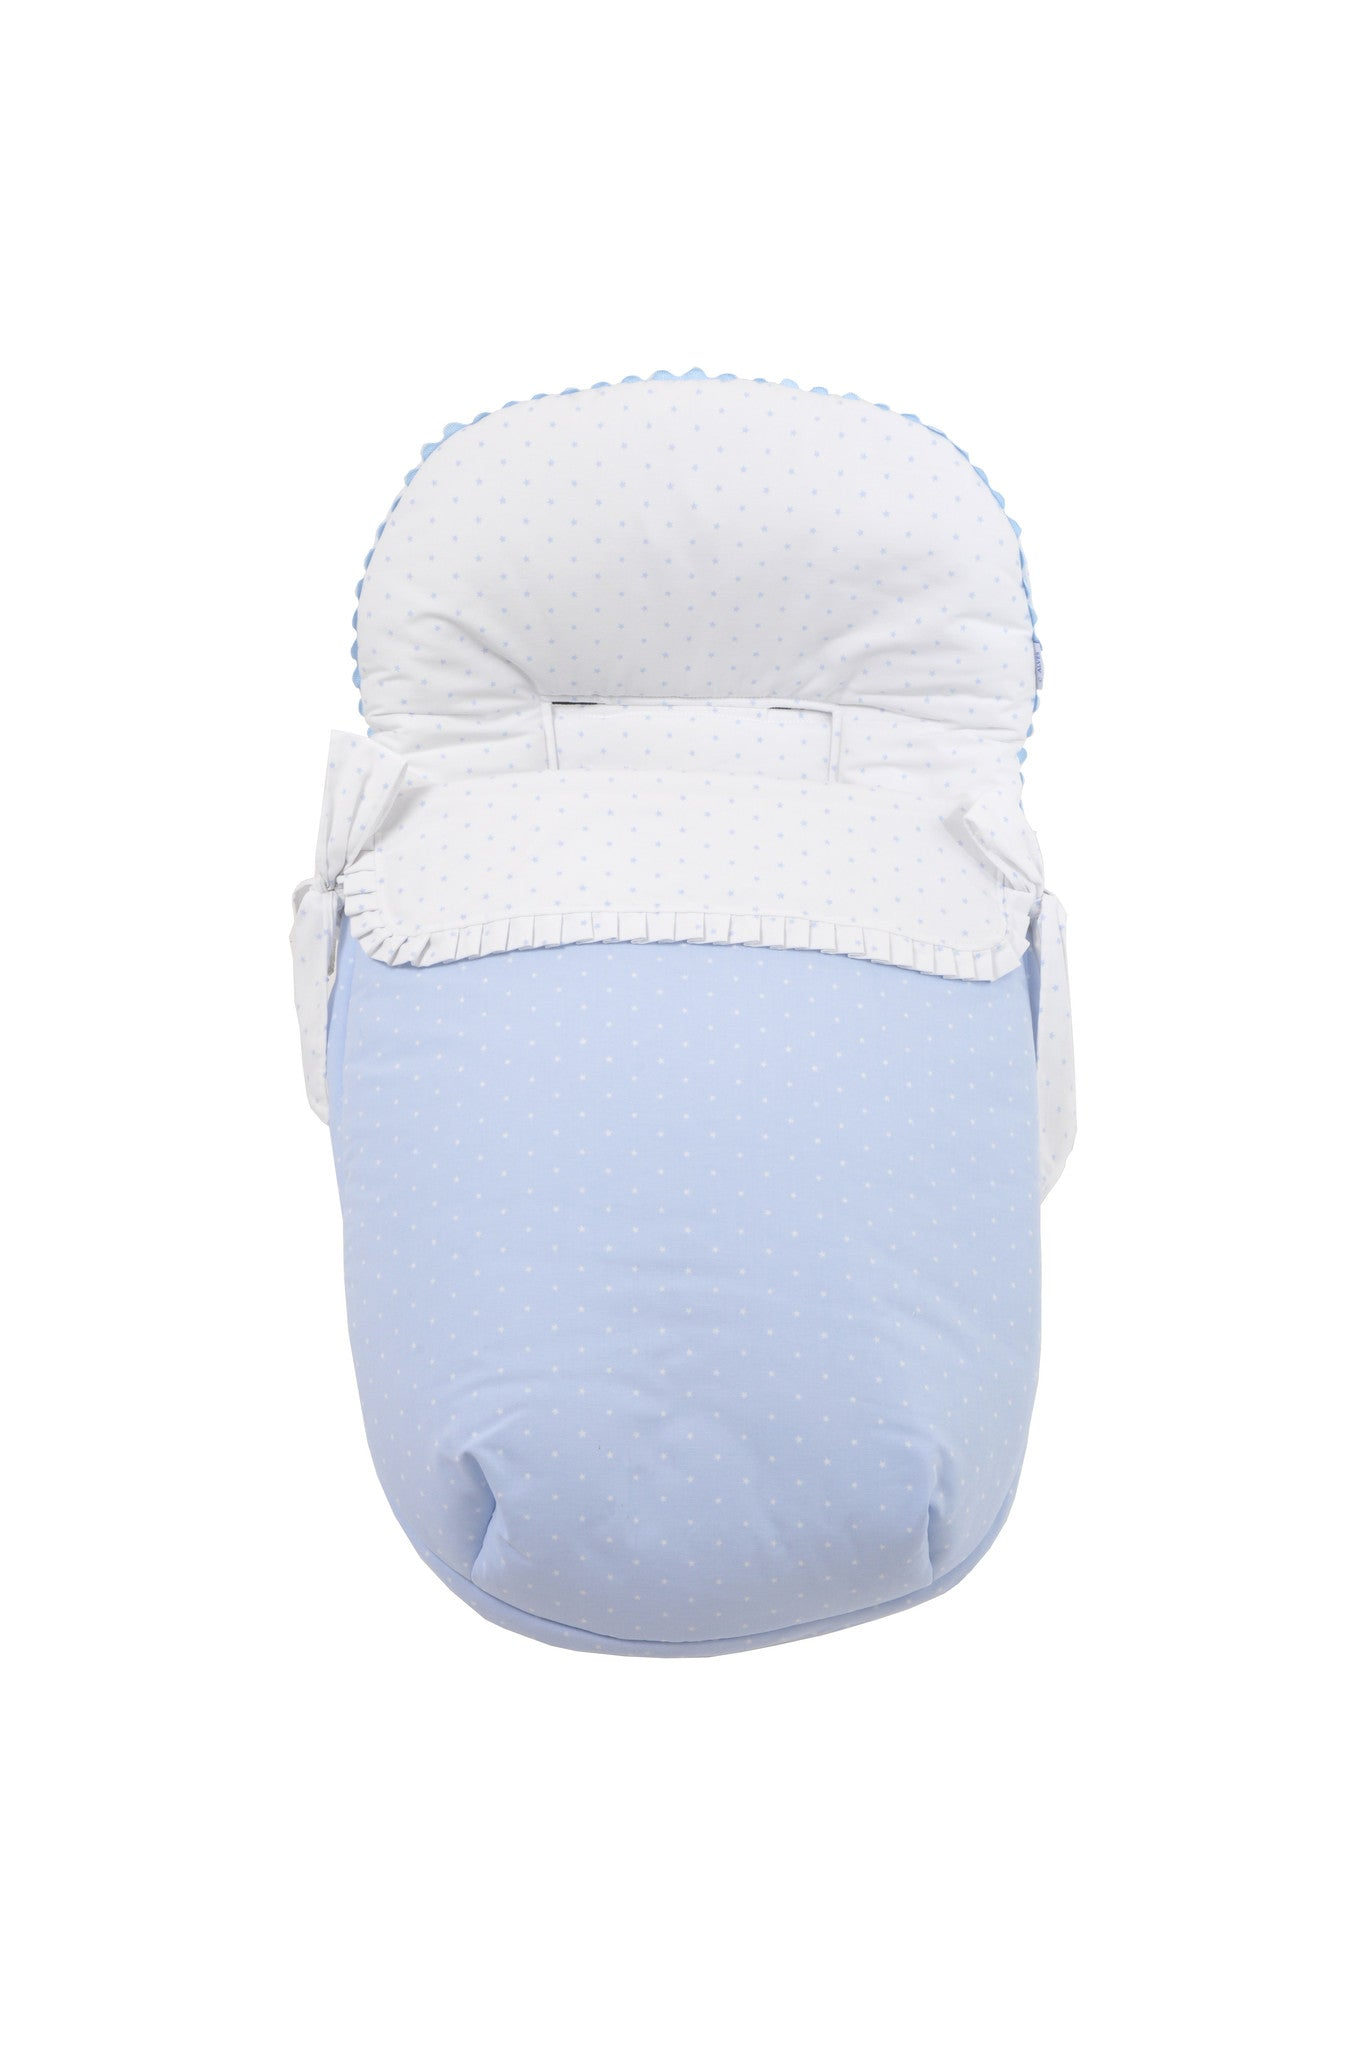 Stroller Universal Cotton Cover and Liner- Blue Star Collection